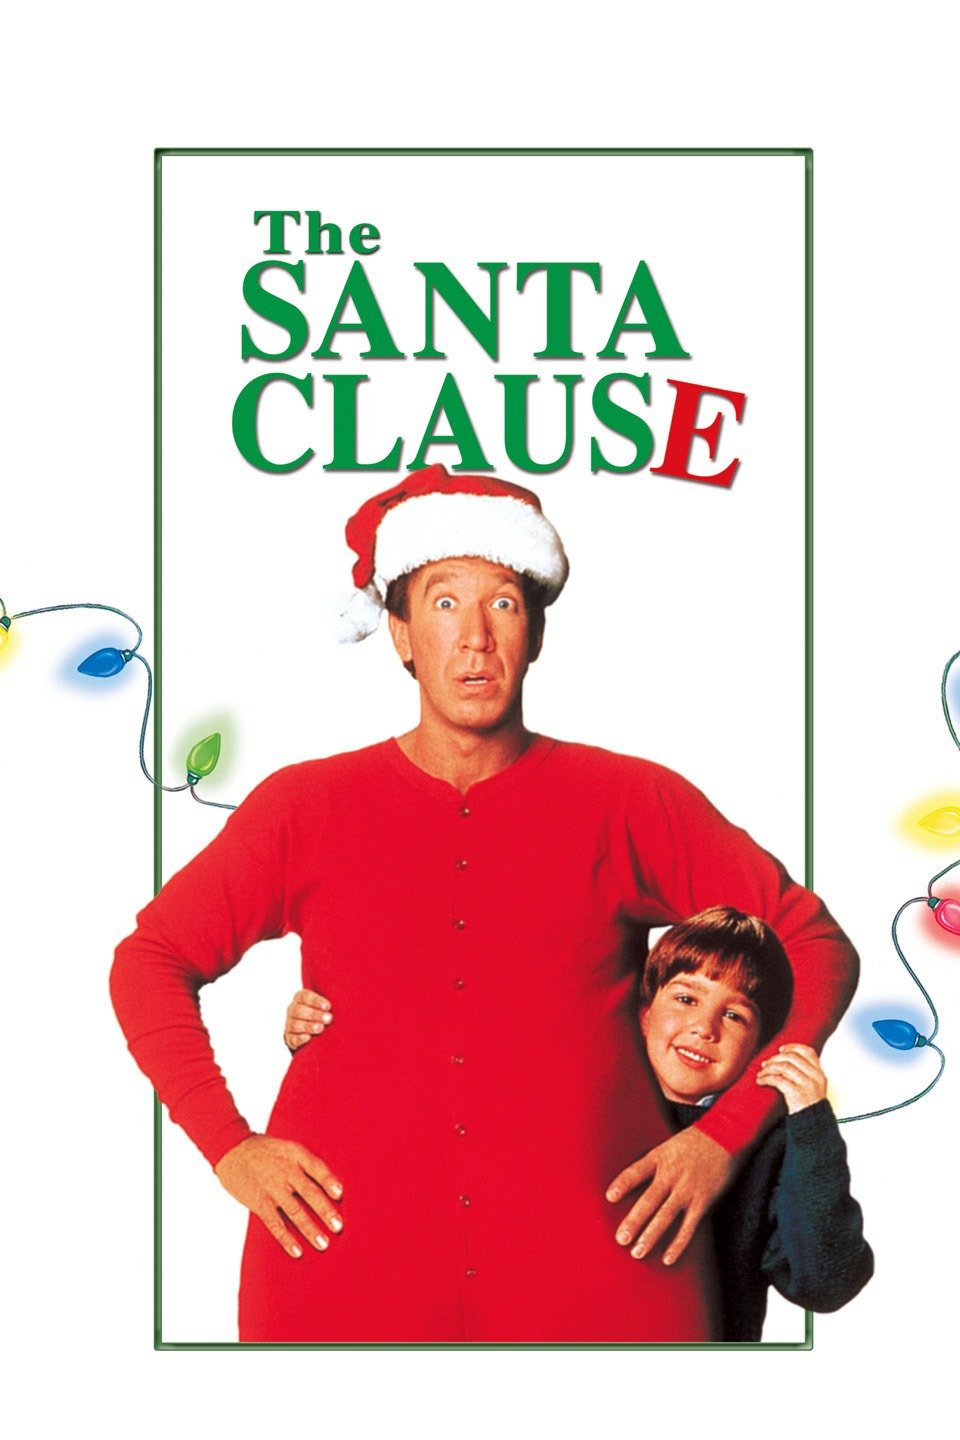 The Santa Clause (1994) - Tim Allen is my favorite. And my best friend Brittany used to look JUST like Charlie when she was little. Had the haircut and everything! From start to finish, this movie always puts me in a Christmassy mood.Fun Fact: One year when my whole family was gathered at my grandparents house for Christmas, each set of grandkid siblings got a teepee tent! It was the most fun. We all camped out in the living room in our teepees for weeks! Best gift. Highly recommend.